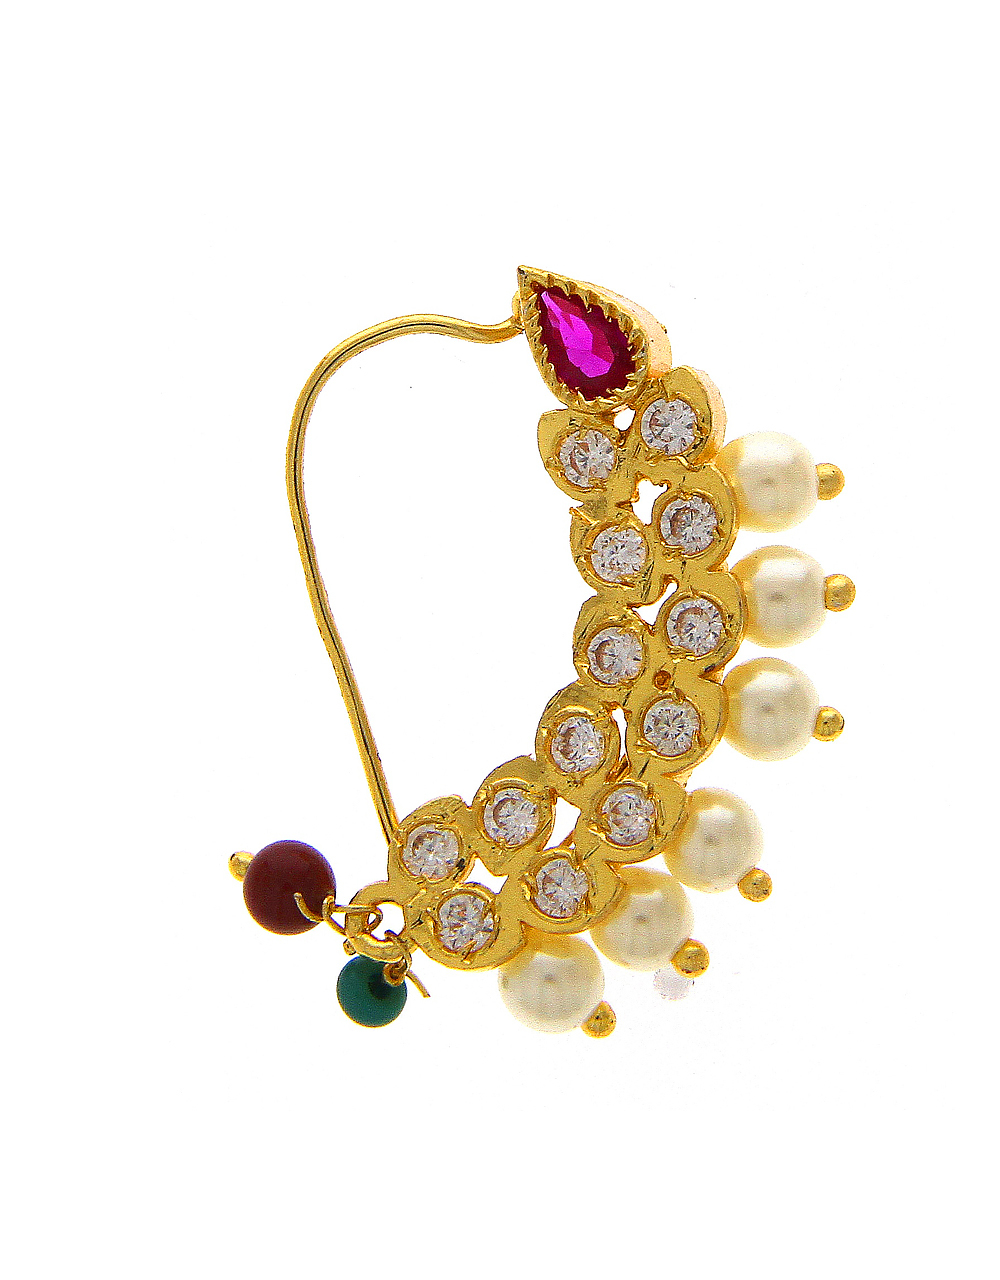 Maharashtrian Nath Studded With Stones And Pearls Beads Nath